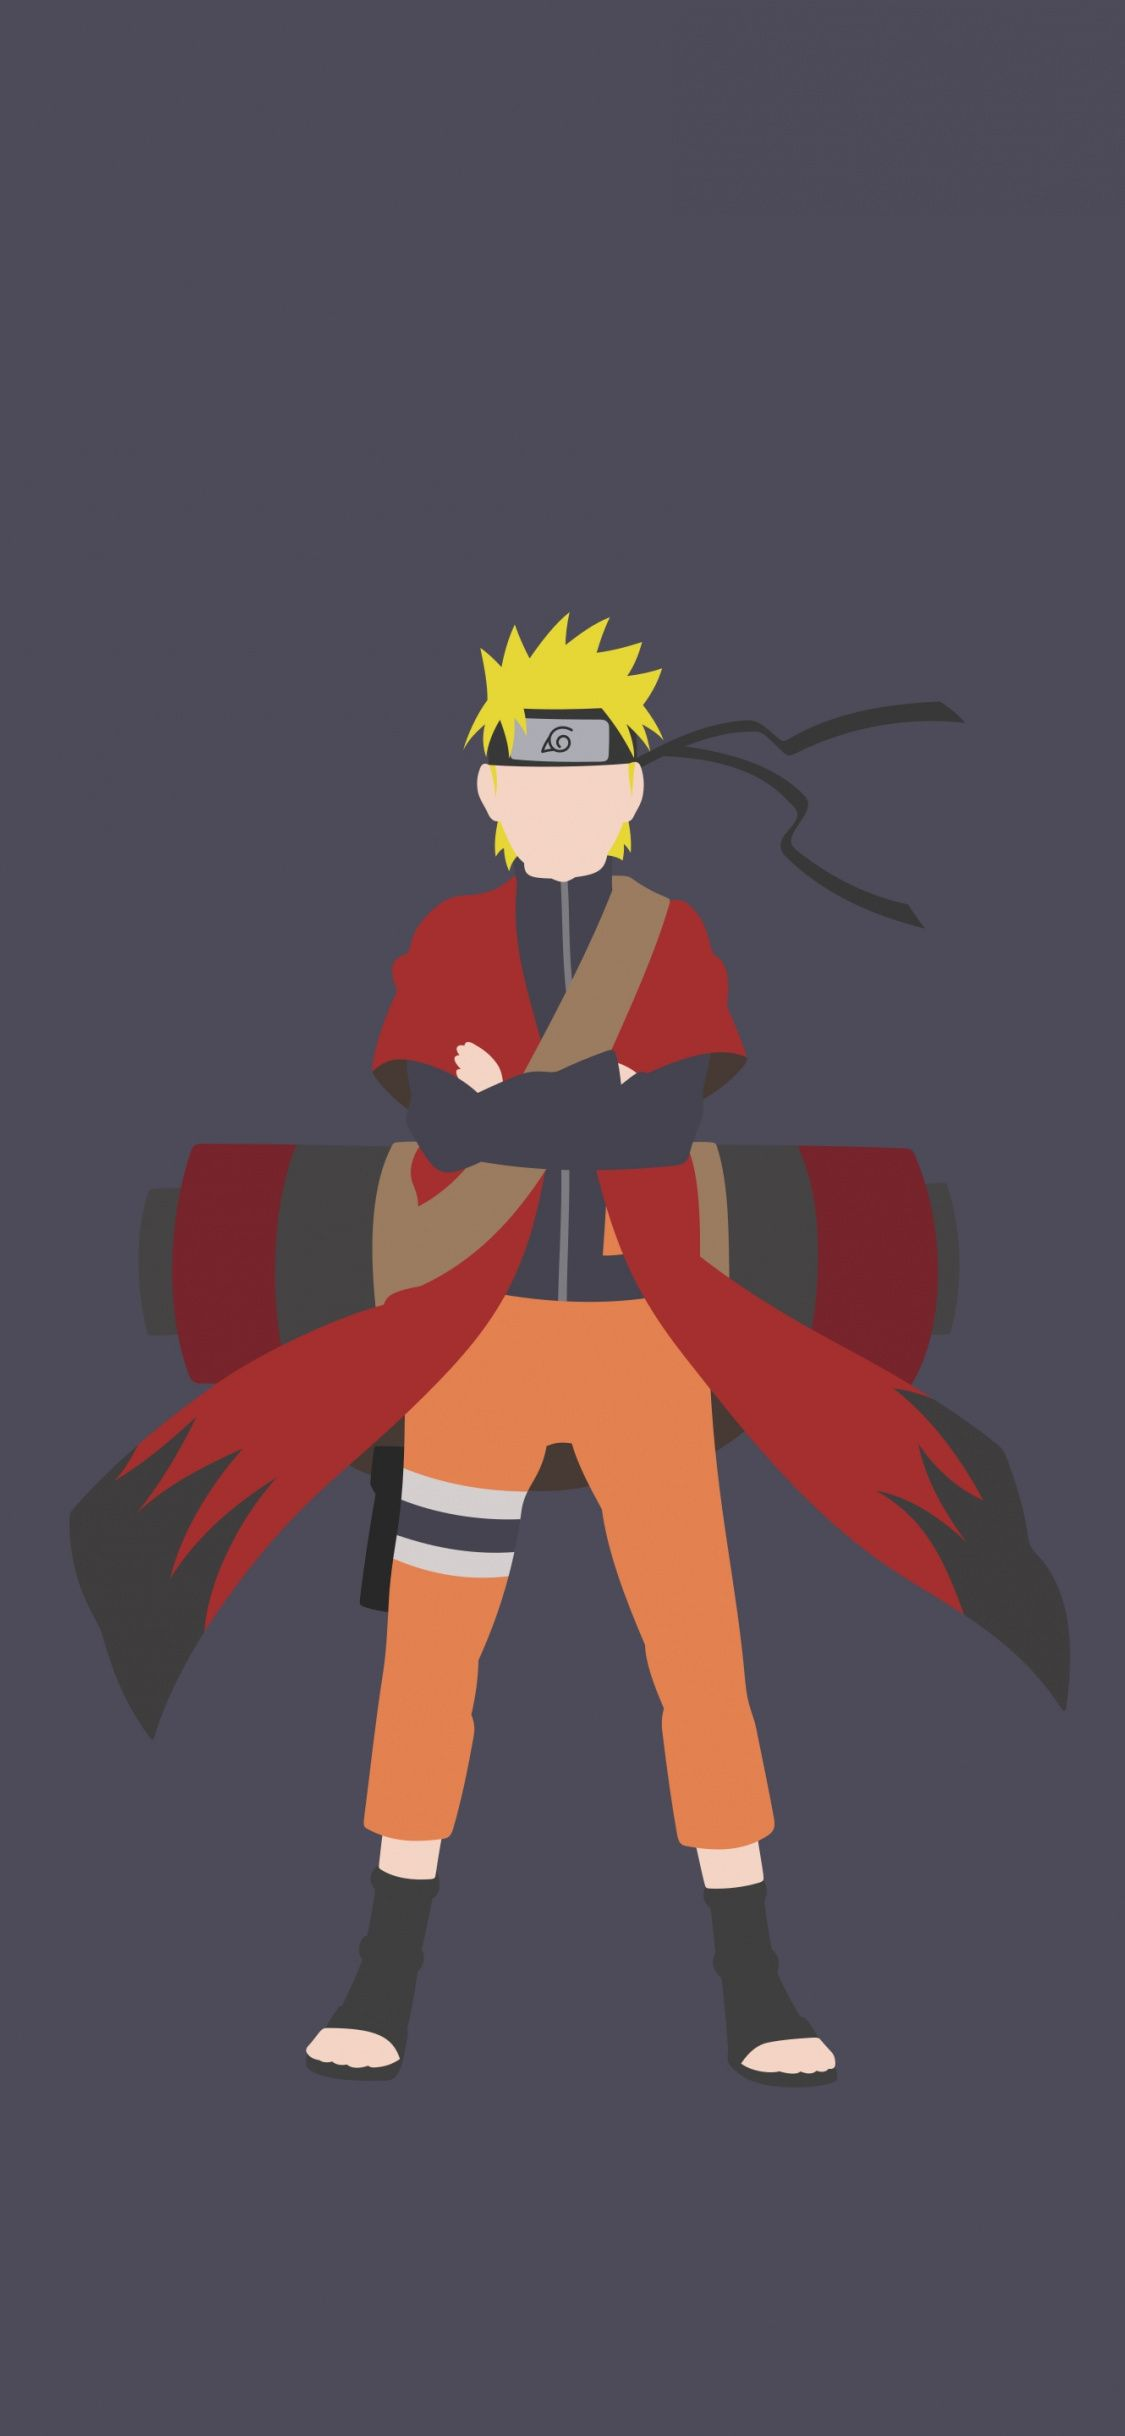 Minimal Anime Naruto Uzumaki Wallpaper Bleach Anime Imagem De